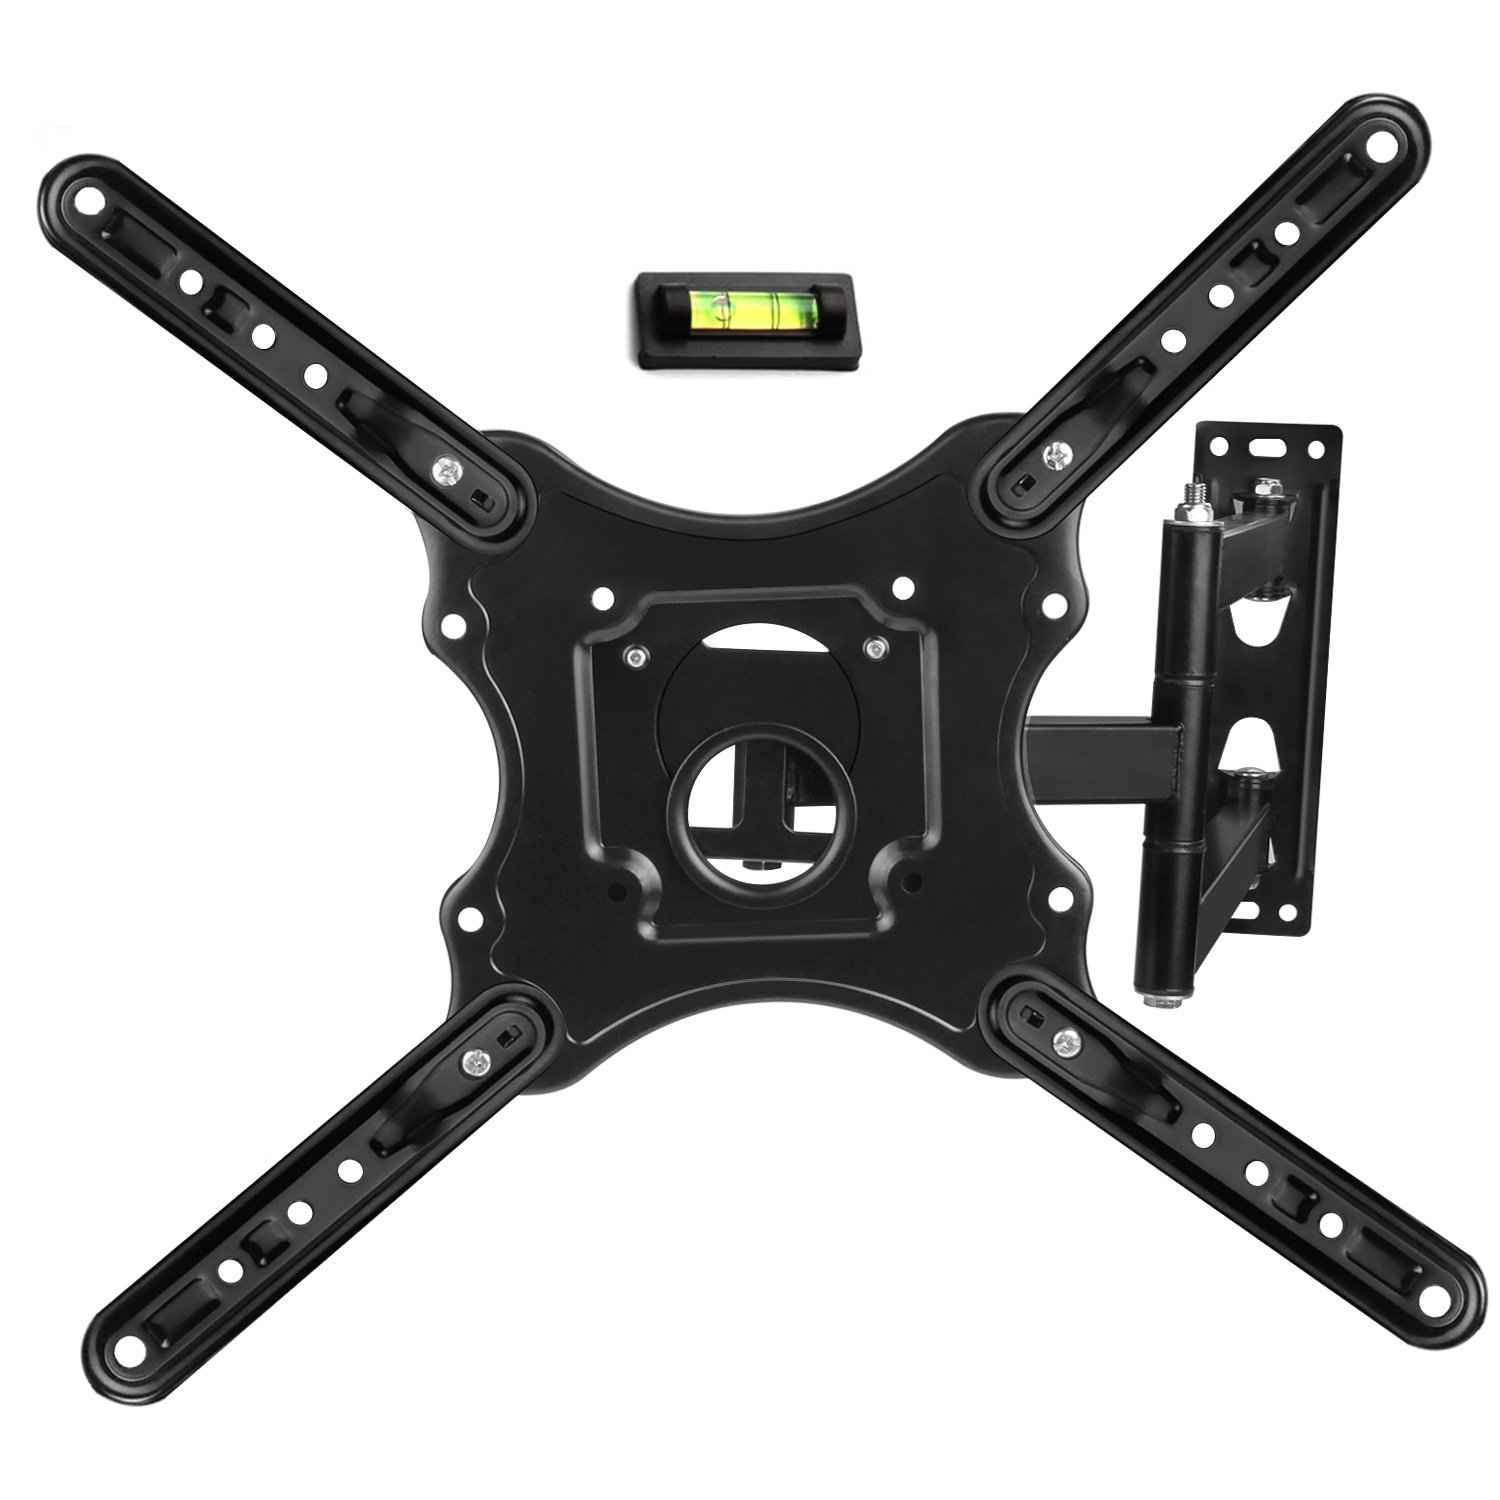 Fancy Buying TV Wall Mount Monitor Wall Bracket with Swivel and Articulating Tilt Arm, Fits 26 32 35 37 40 42 47 50 55 Inch LCD LED OLED Flat Screens up to 66 lbs Flat Screen TVs